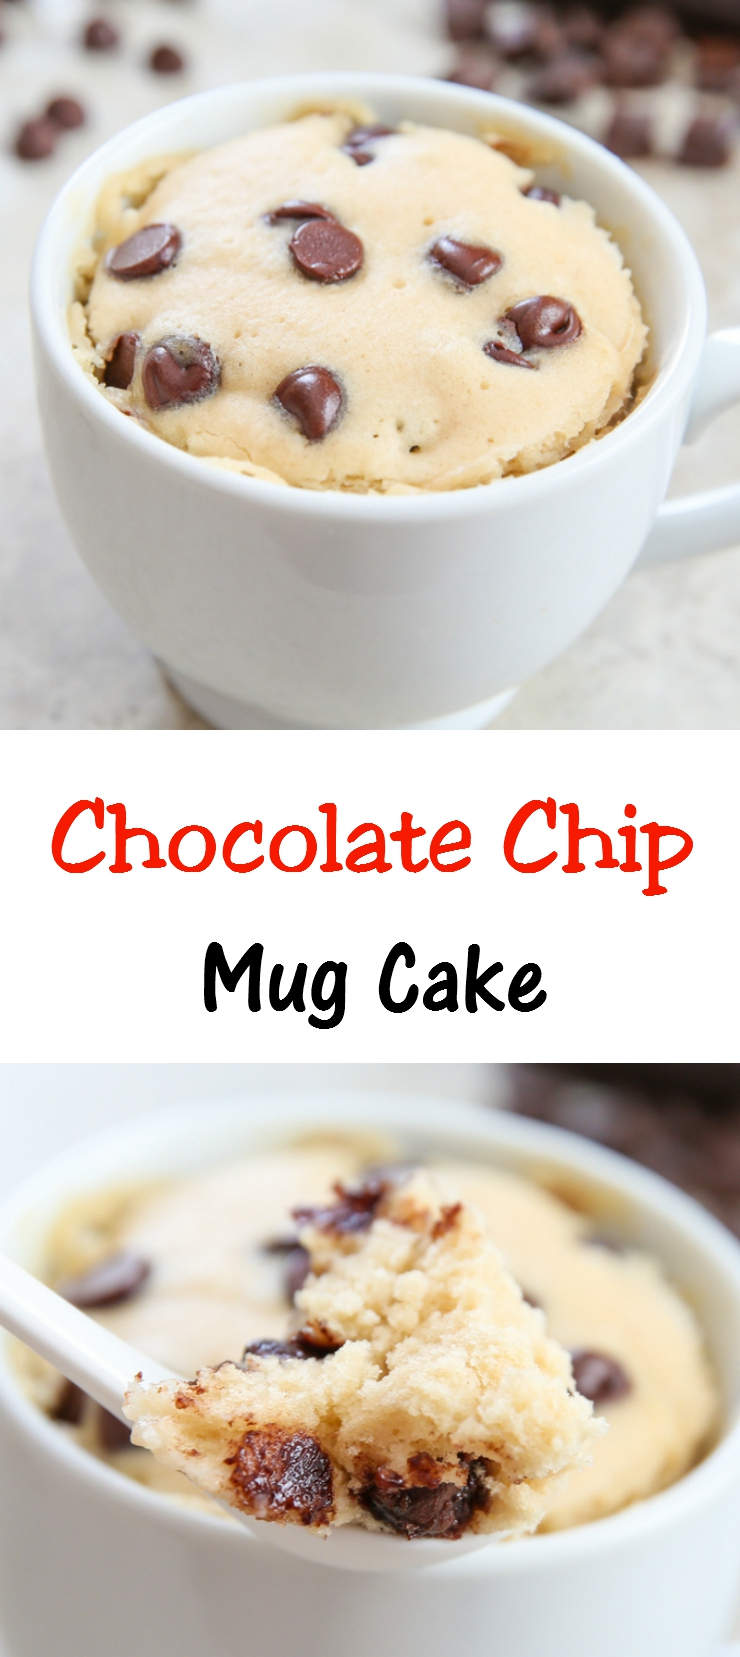 photo collage of Chocolate Chip Mug Cake